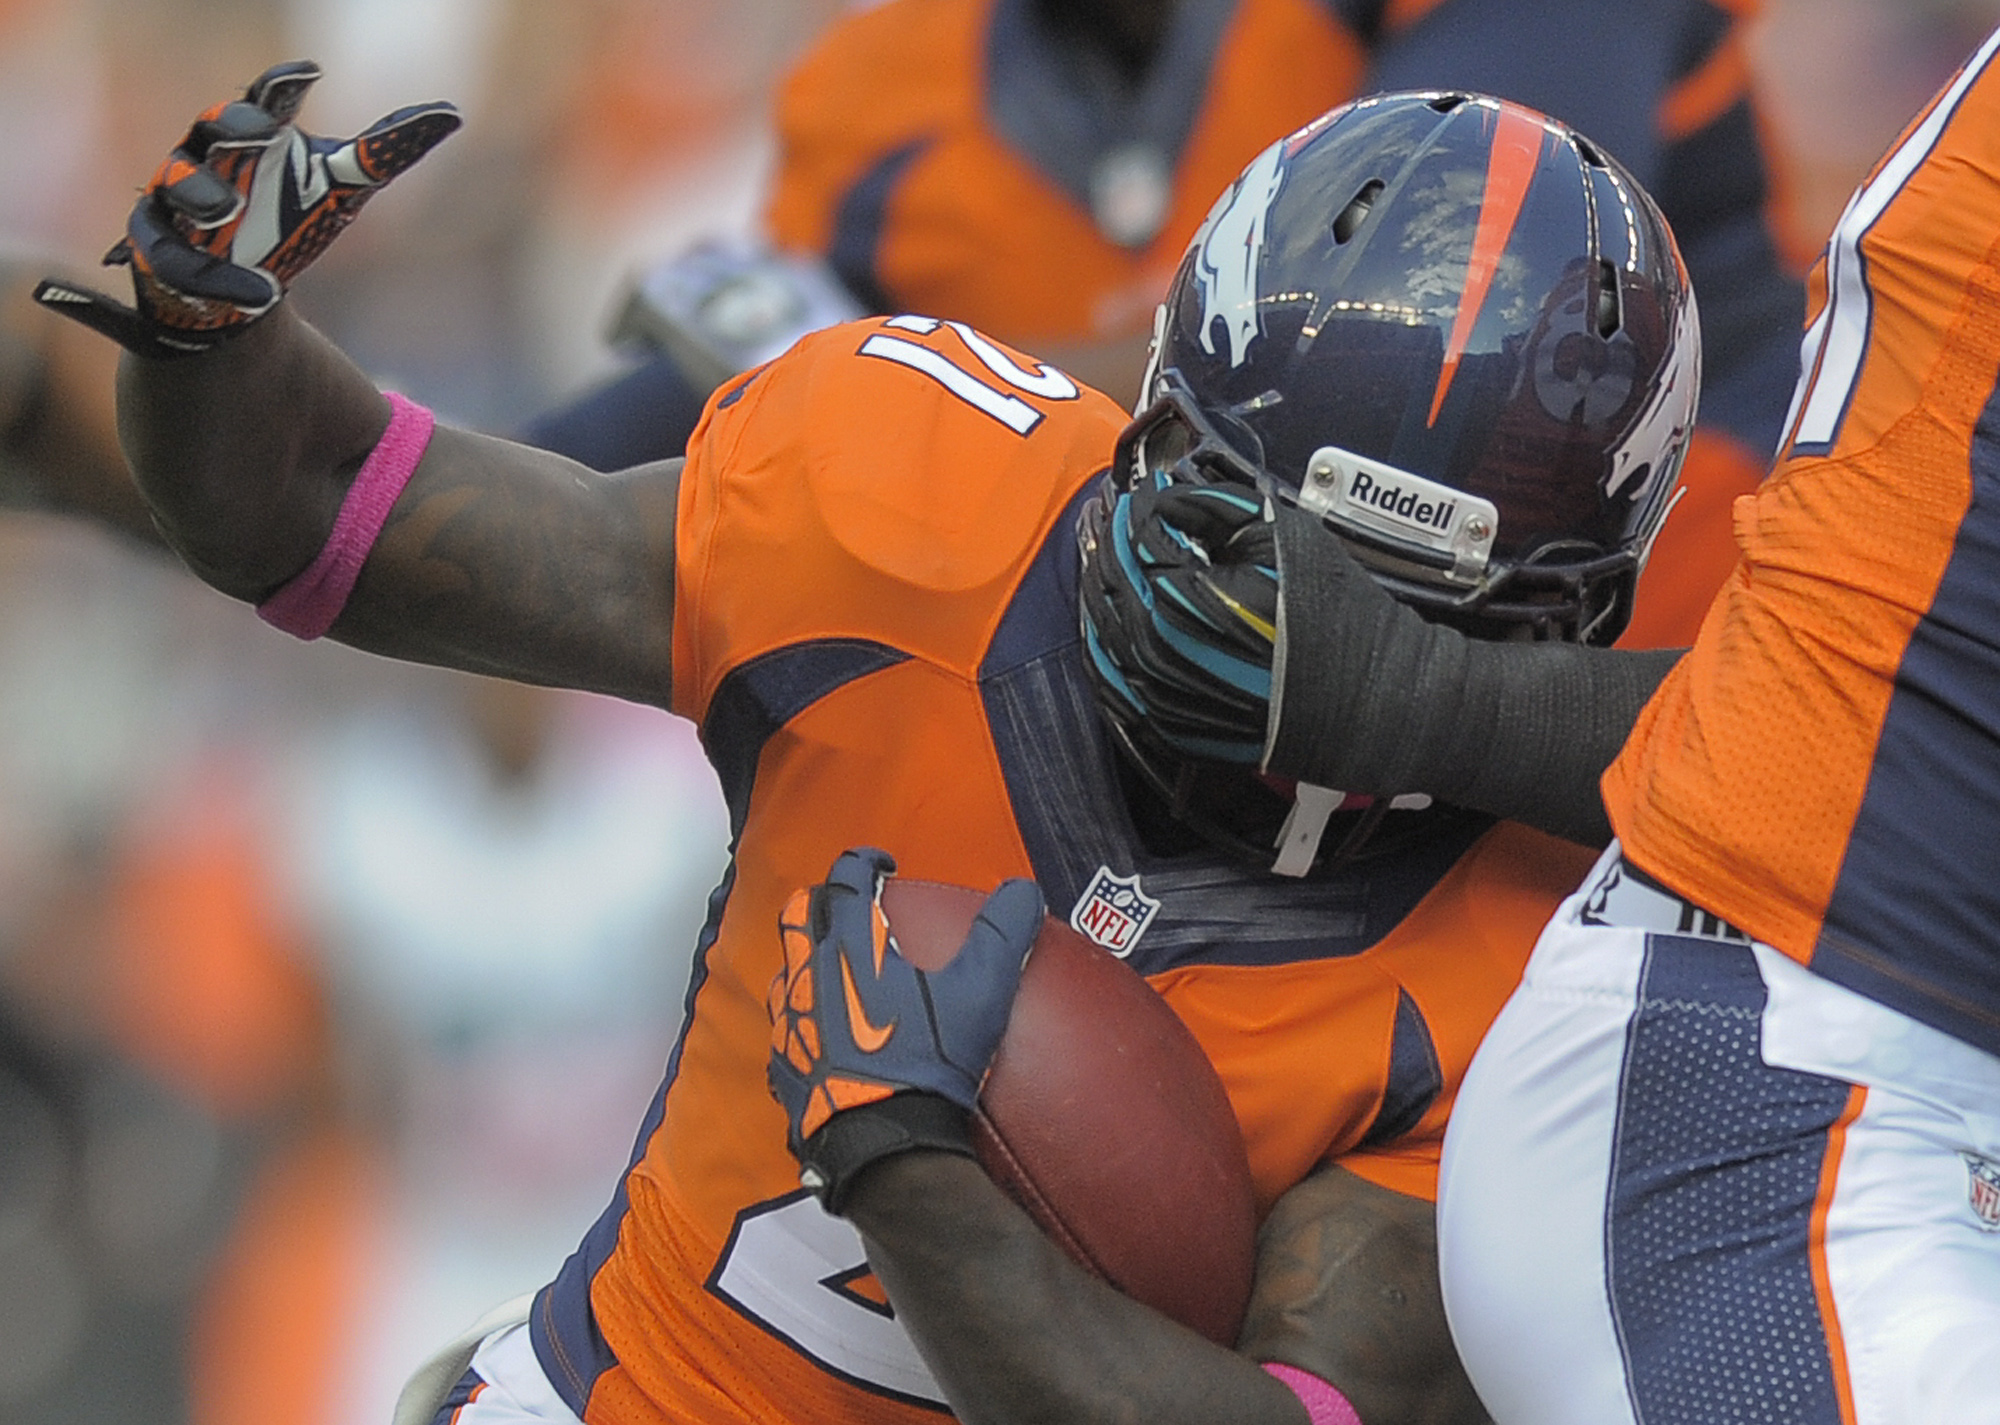 CORRECTS ID TO RONNIE HILLMAN, NOT KNOWSHON MORENO - Denver Broncos running back Ronnie Hillman (21) has his face mask grabbed as he runs the ball against the Jacksonville Jaguars in the third quarter of an NFL football game, Sunday, Oct. 13, 2013, in Denver